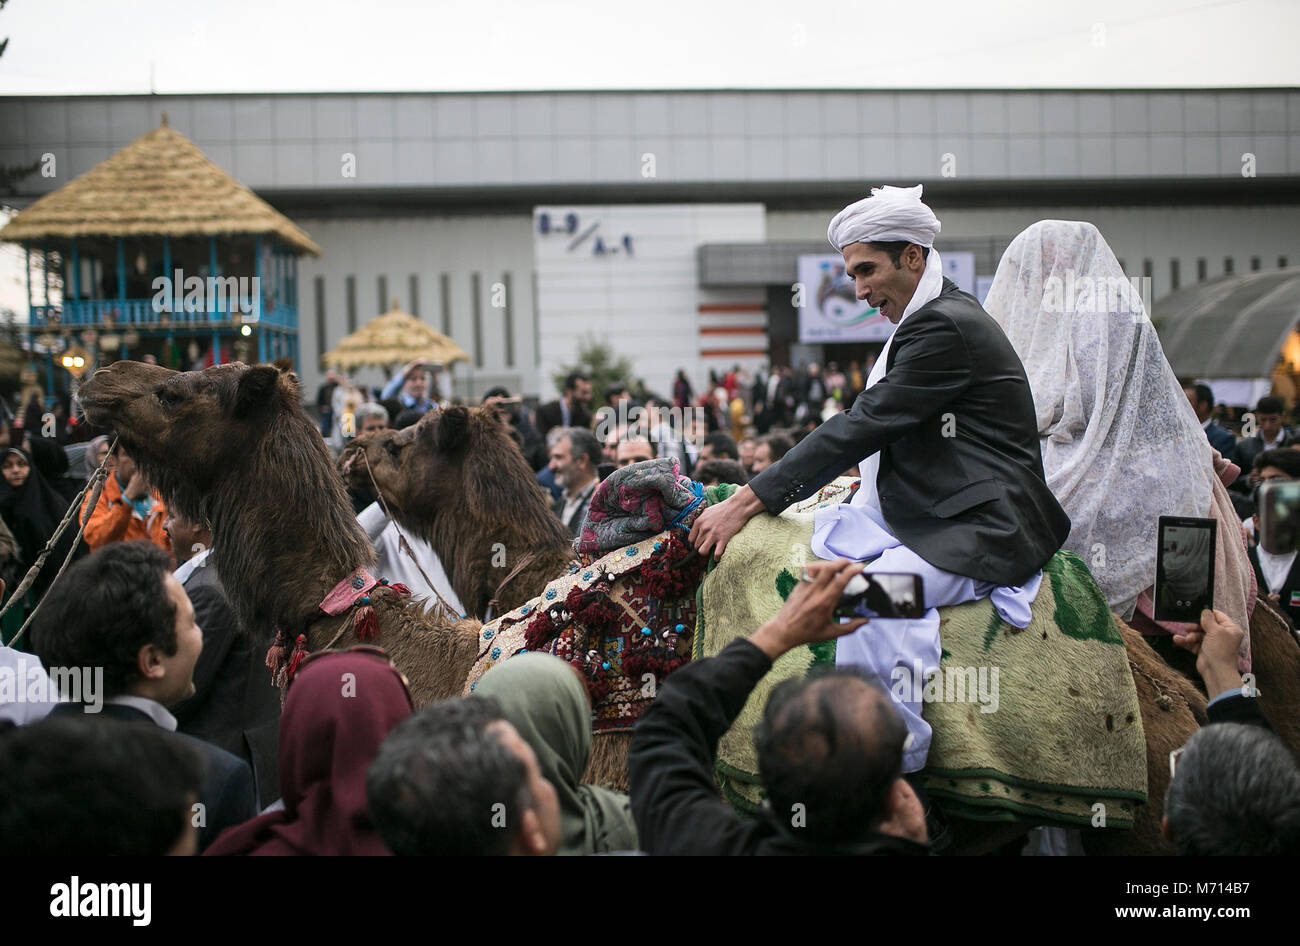 Tehran, Iran. 7th Mar, 2018. Iranian rural bride and groom wearing local costumes ride a camel at a symbolic wedding - Stock Image